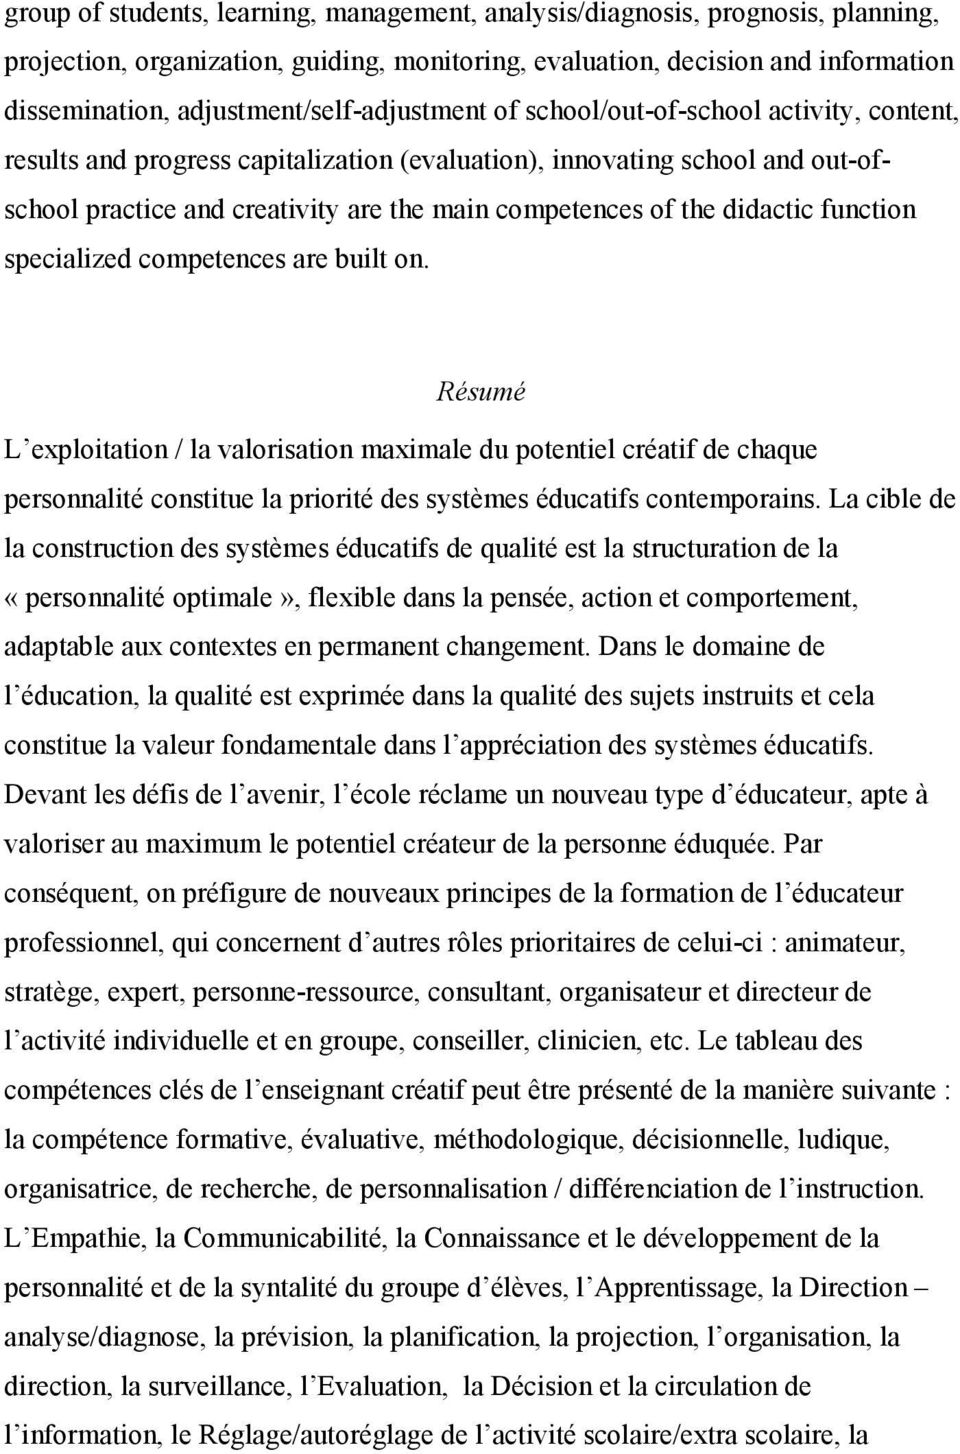 competences of the didactic function specialized competences are built on.